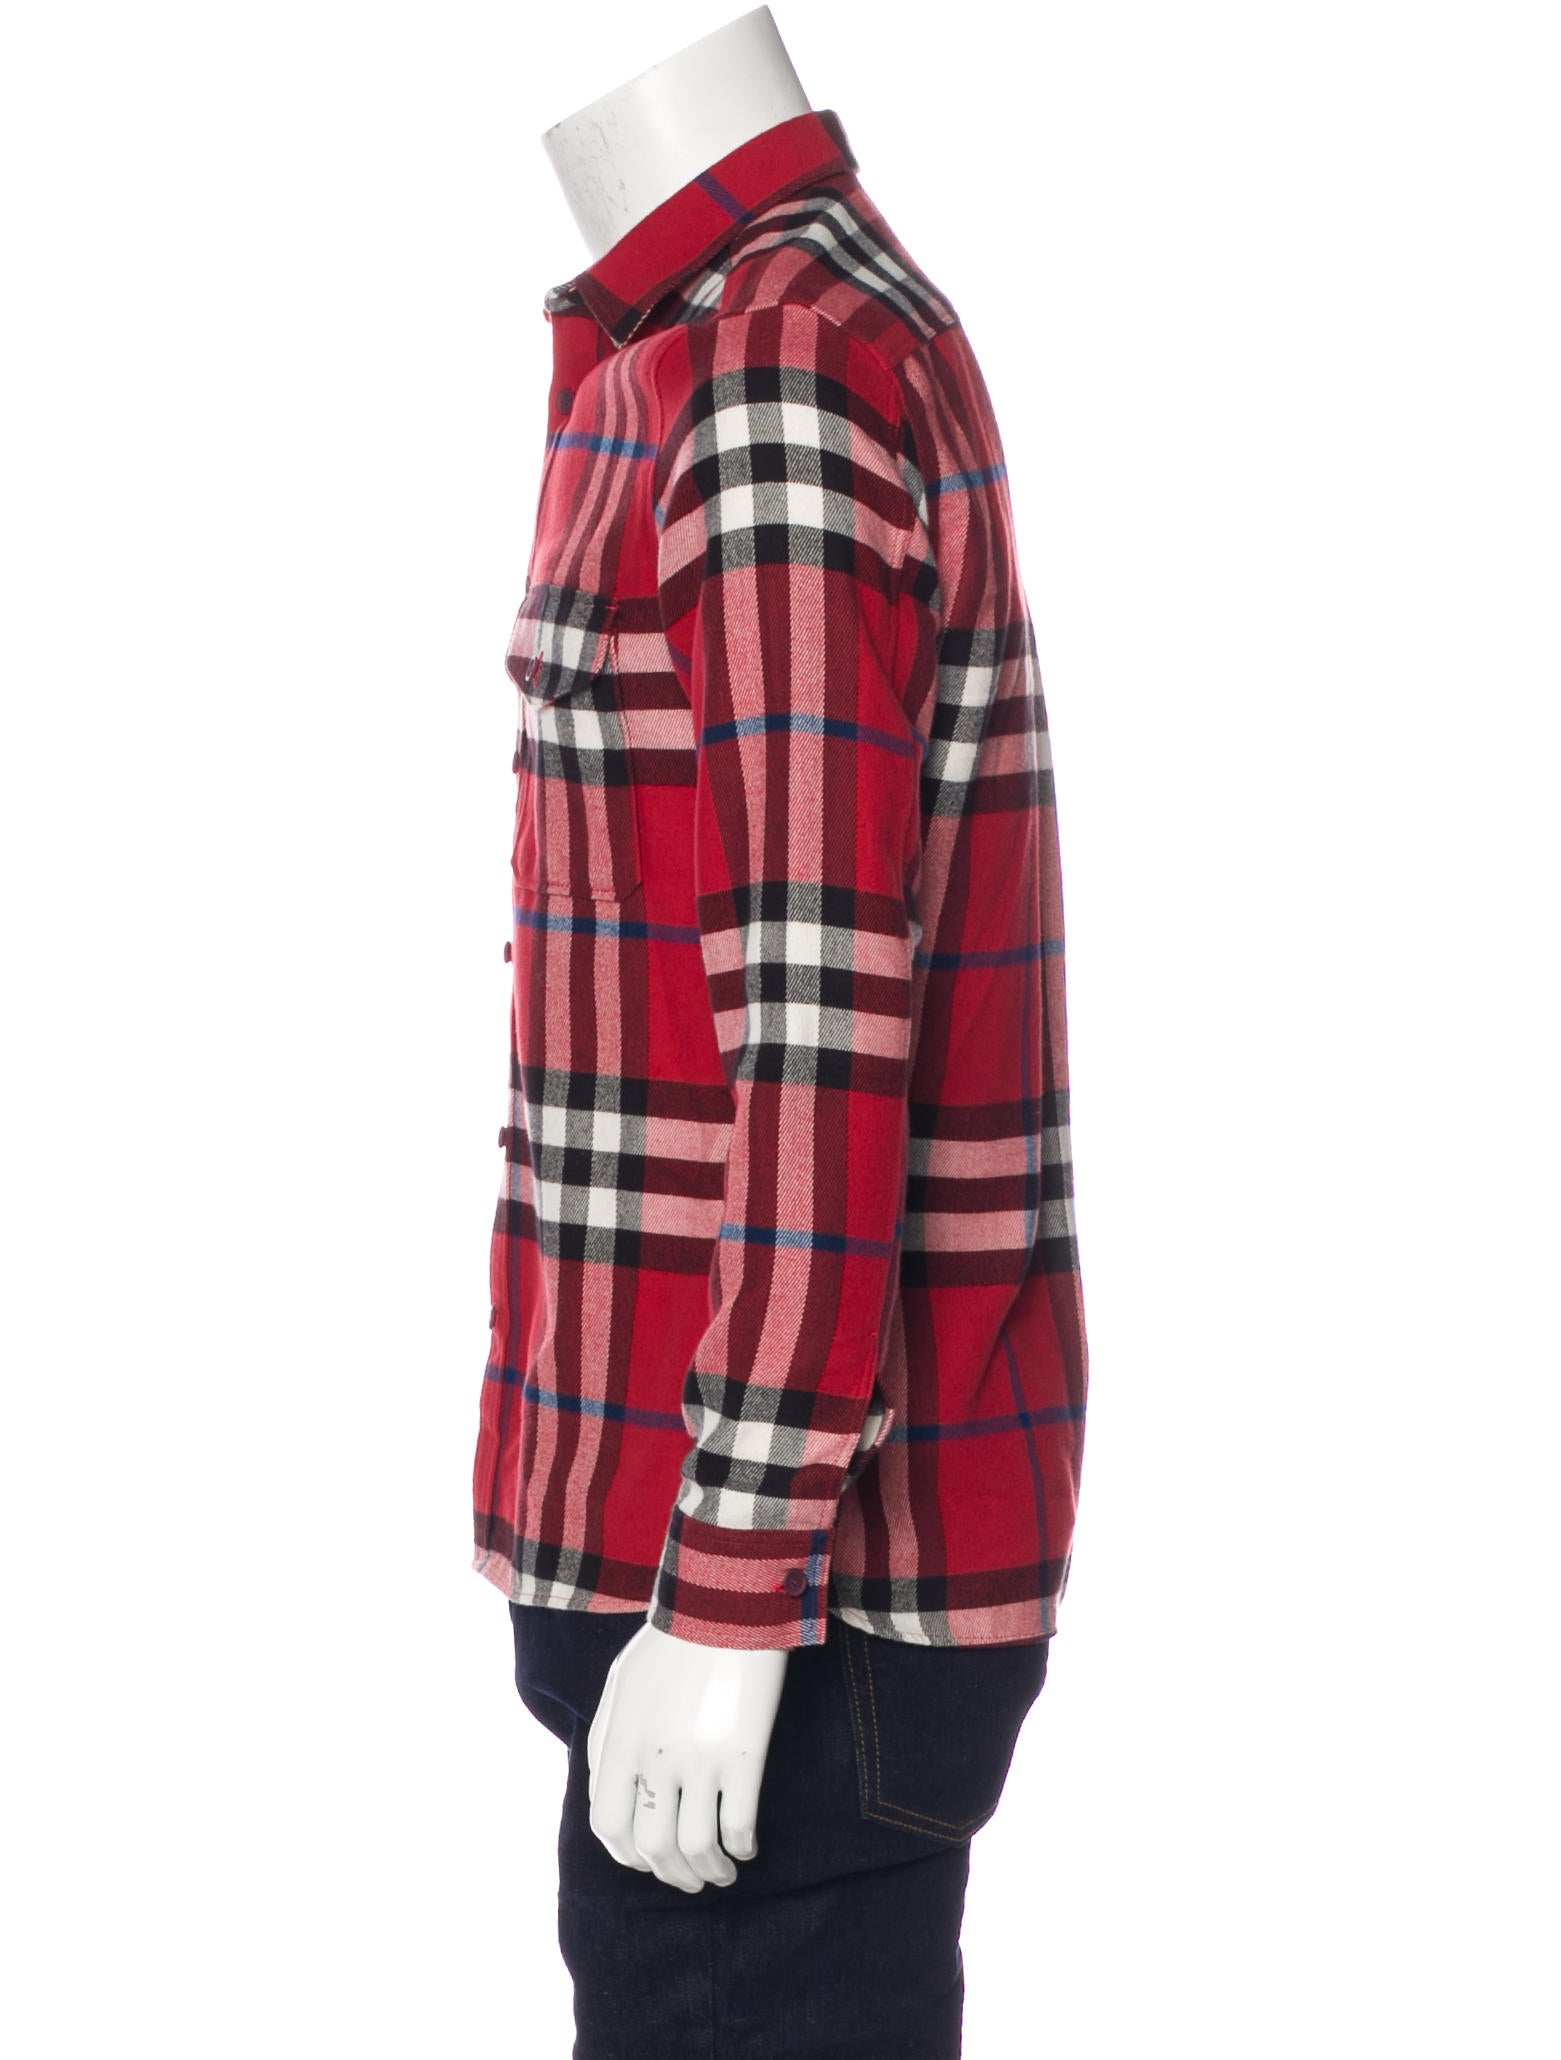 Burberry brit plaid flannel shirt clothing bbr29196 for Burberry brit checked shirt